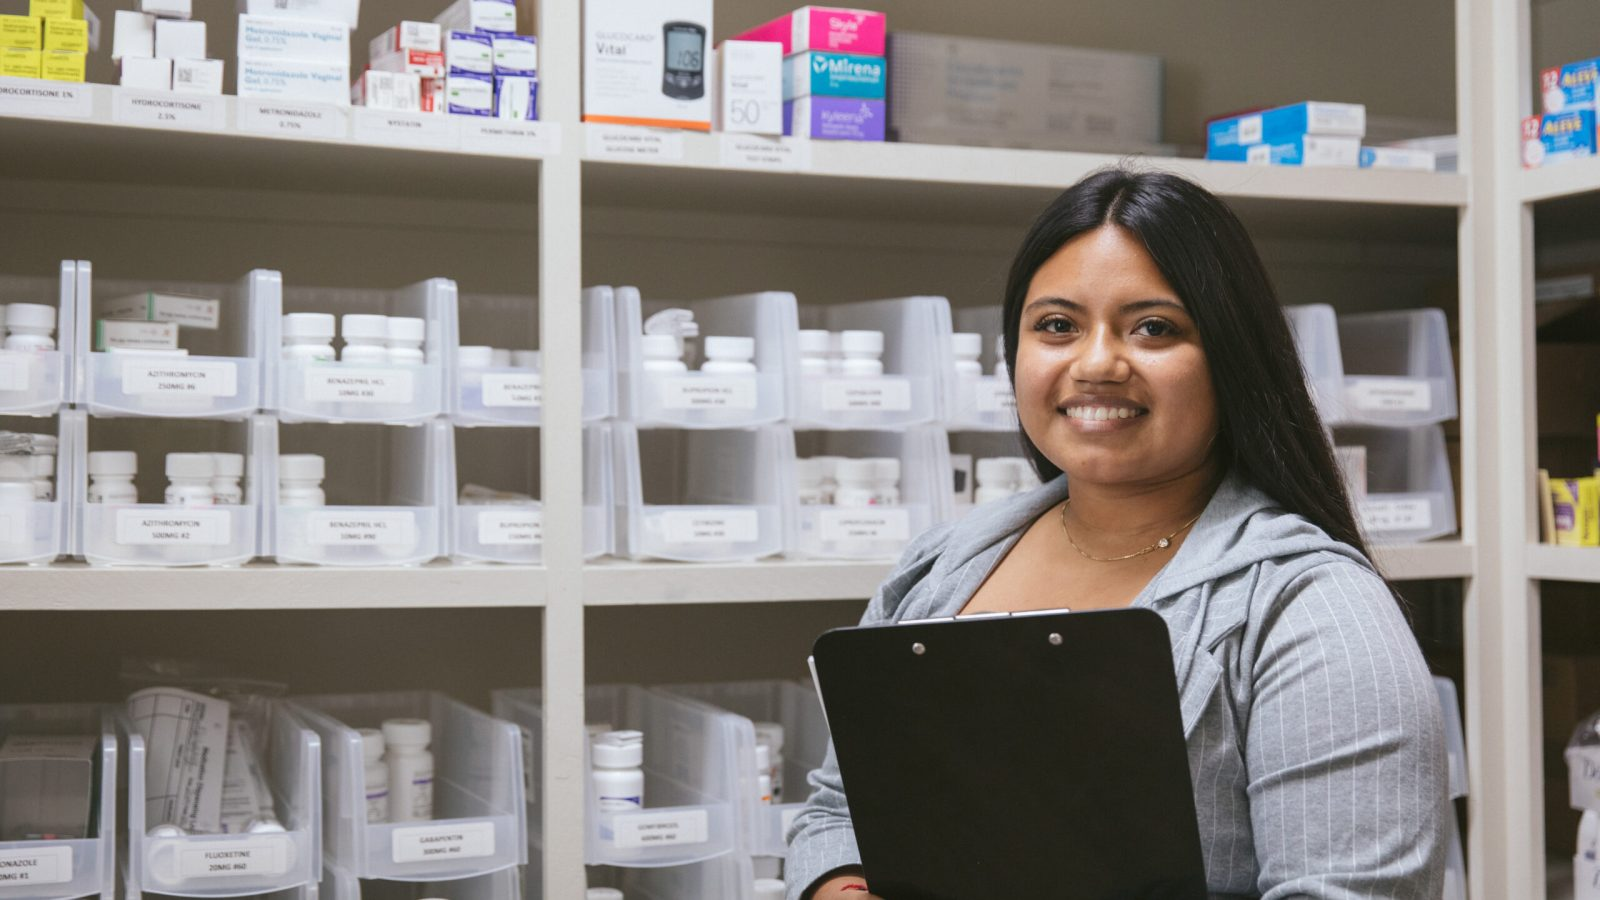 Healthcare Provider Ines Mendoza in the pharmacy of the Santa Barbara Neighborhood Clinics, in Goleta, California, on Friday, October 23, 2020. The Santa Barbara Neighborhood Clinics are among the hundreds of community health centers across the U.S. that received Bayer-donated IUDs to bolster reproductive health services for uninsured women. (Photo by Erin Feinblatt for Direct Relief)